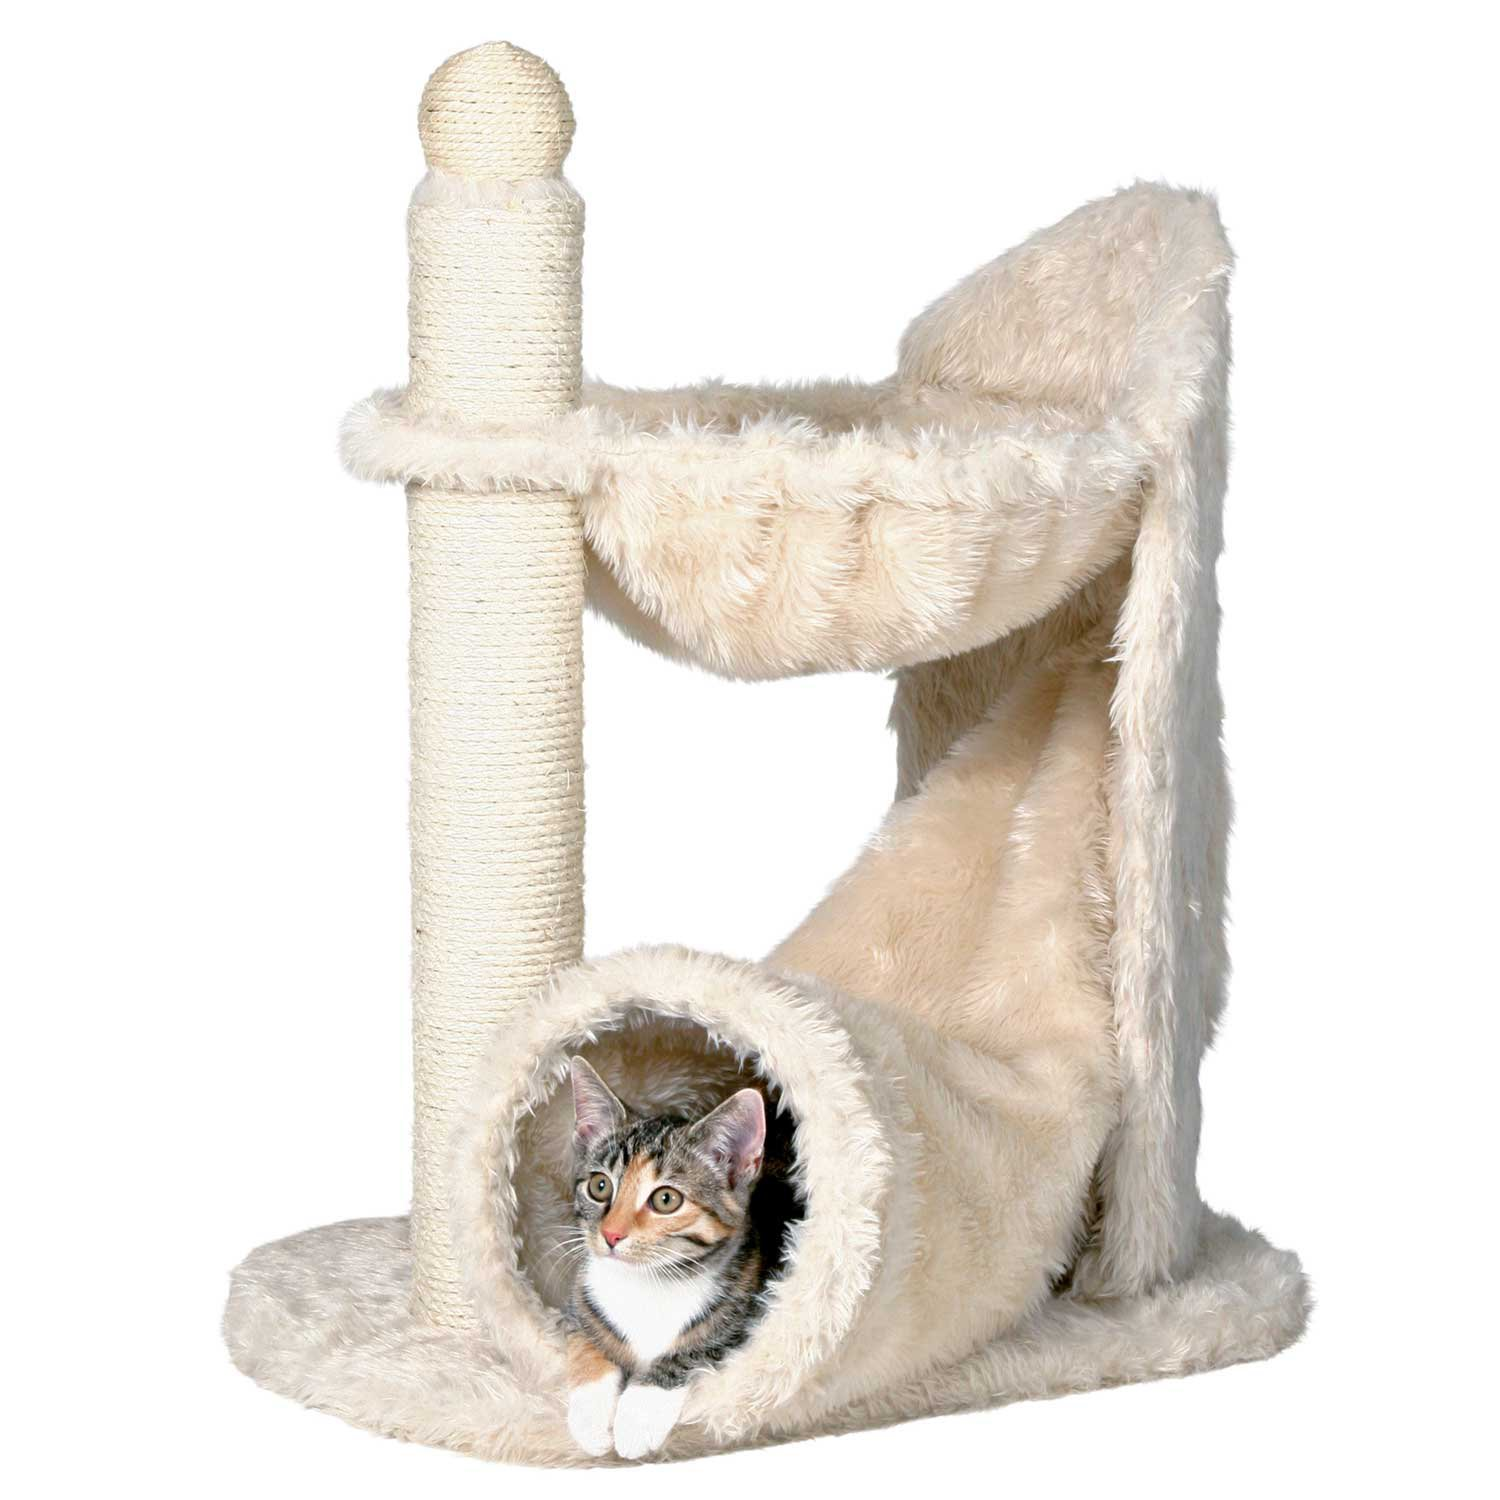 "Trixie Dreamworld Gandia Cat Tower, 26.75"" H, 15.5 In, Off White"